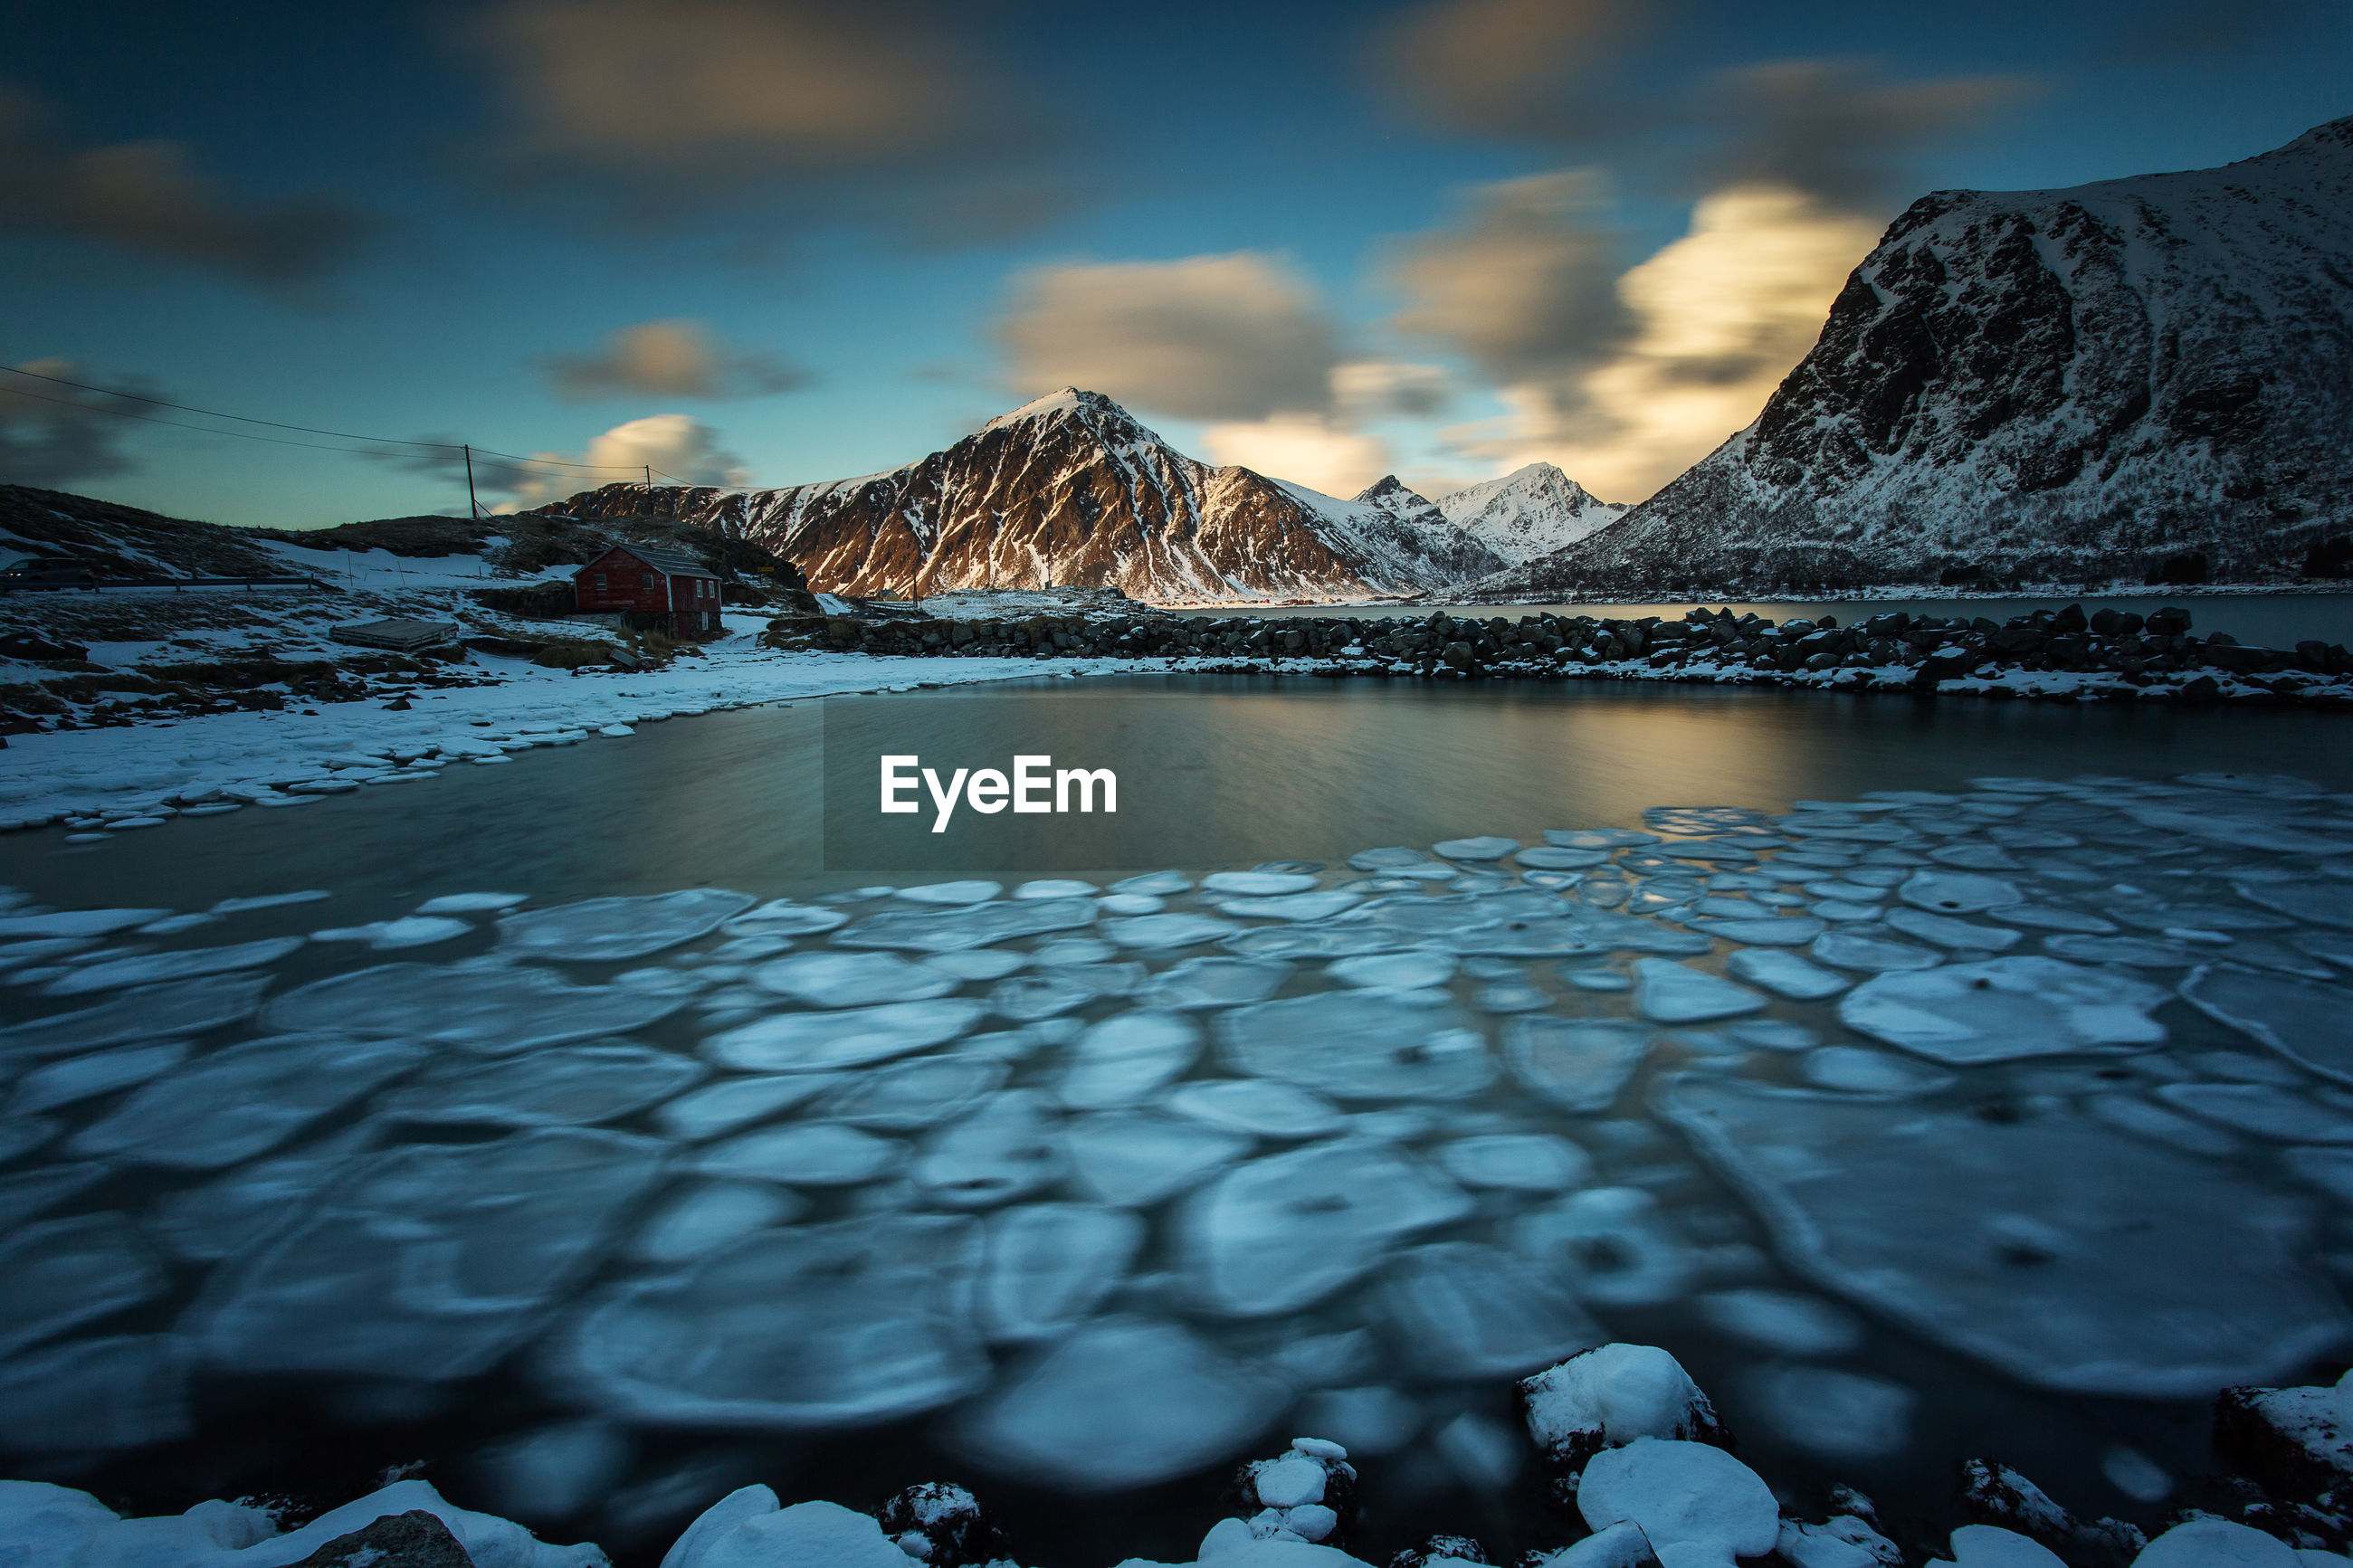 FROZEN LAKE BY SNOWCAPPED MOUNTAIN AGAINST SKY